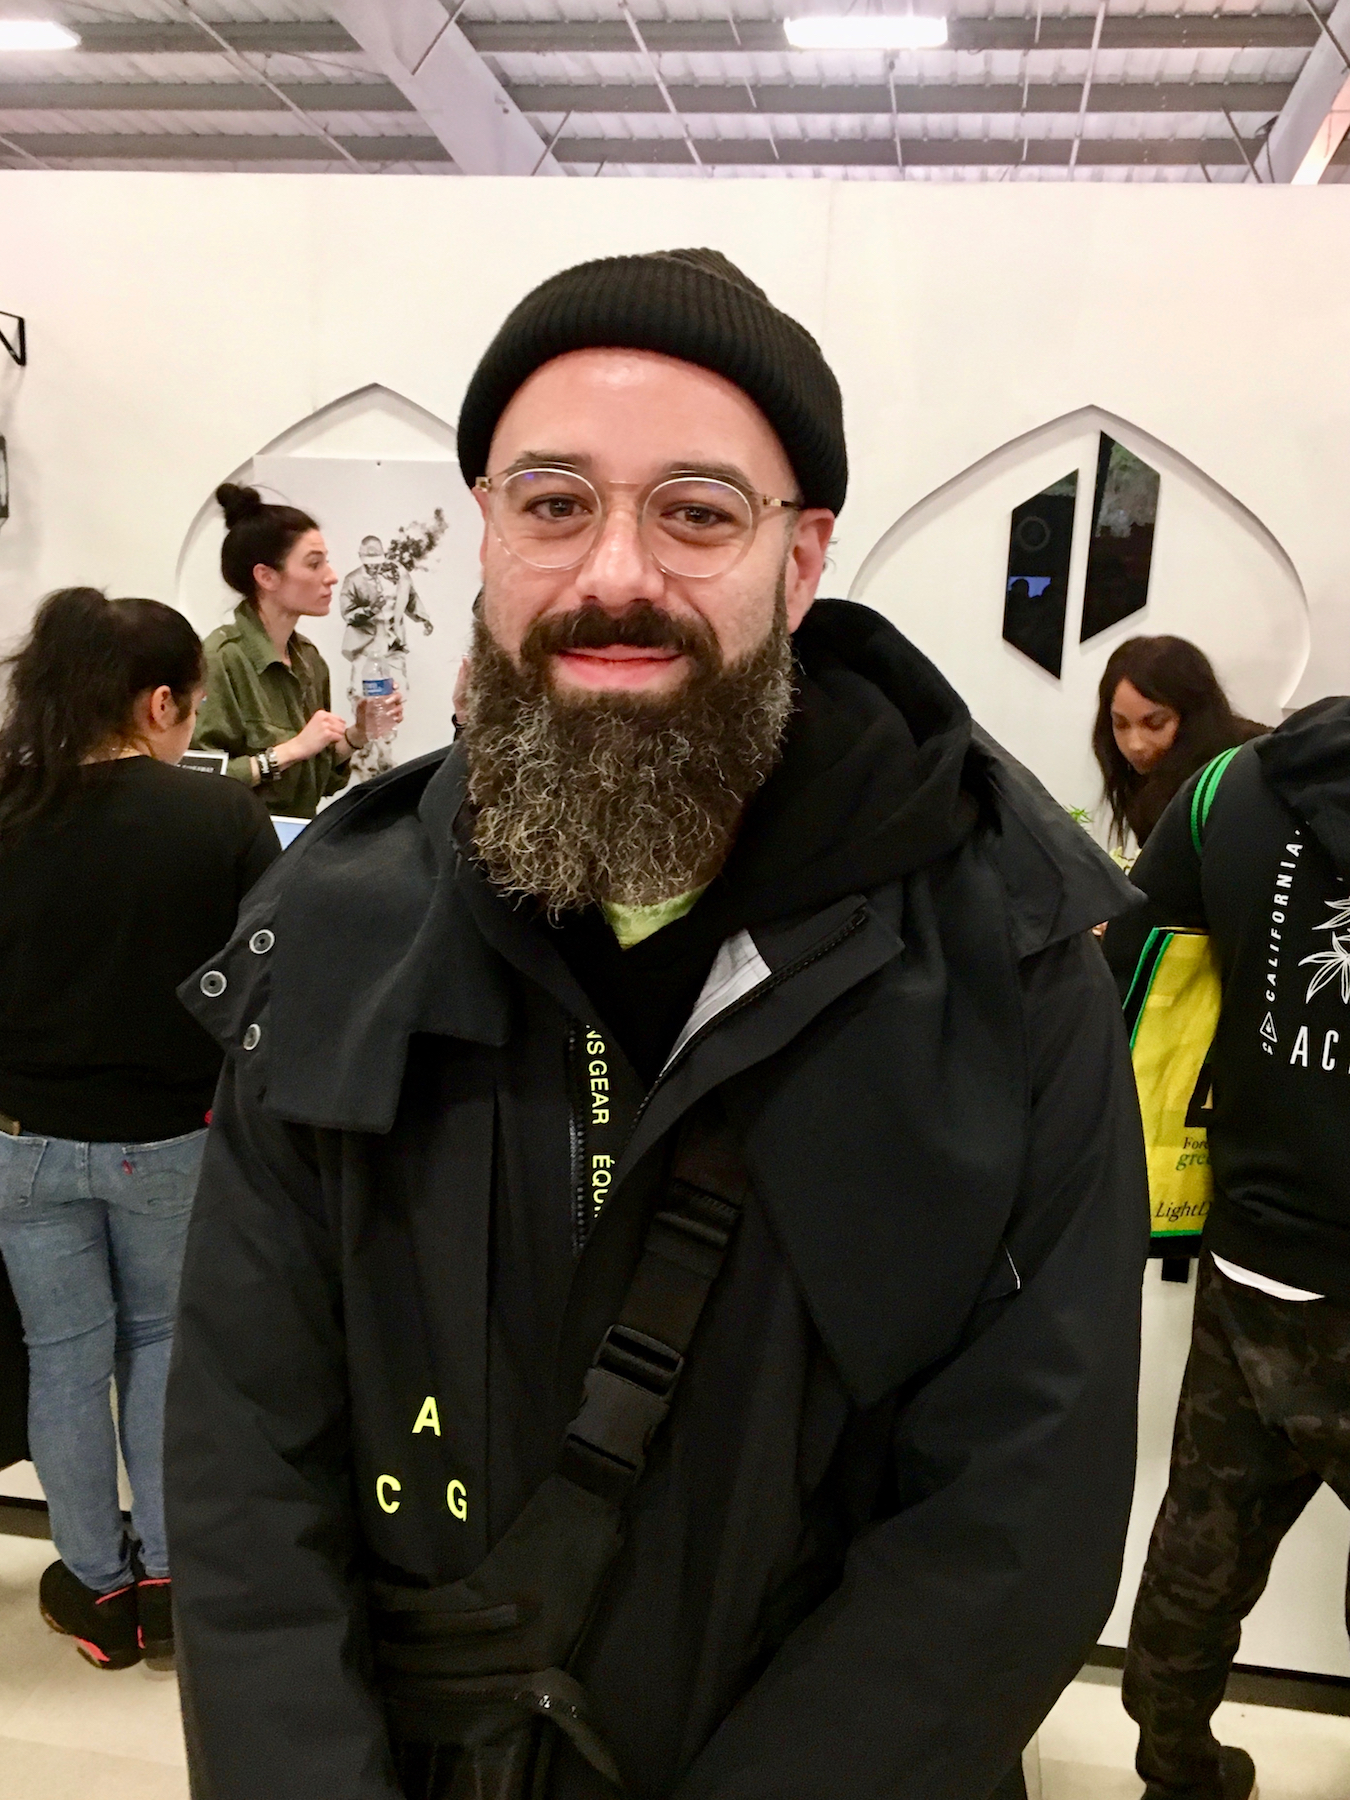 Low-key titan Roger Volodarsky—CEO of Puffco—provided Puffco Peak for bring-your-own dabs sessions. (David Downs/Leafly)